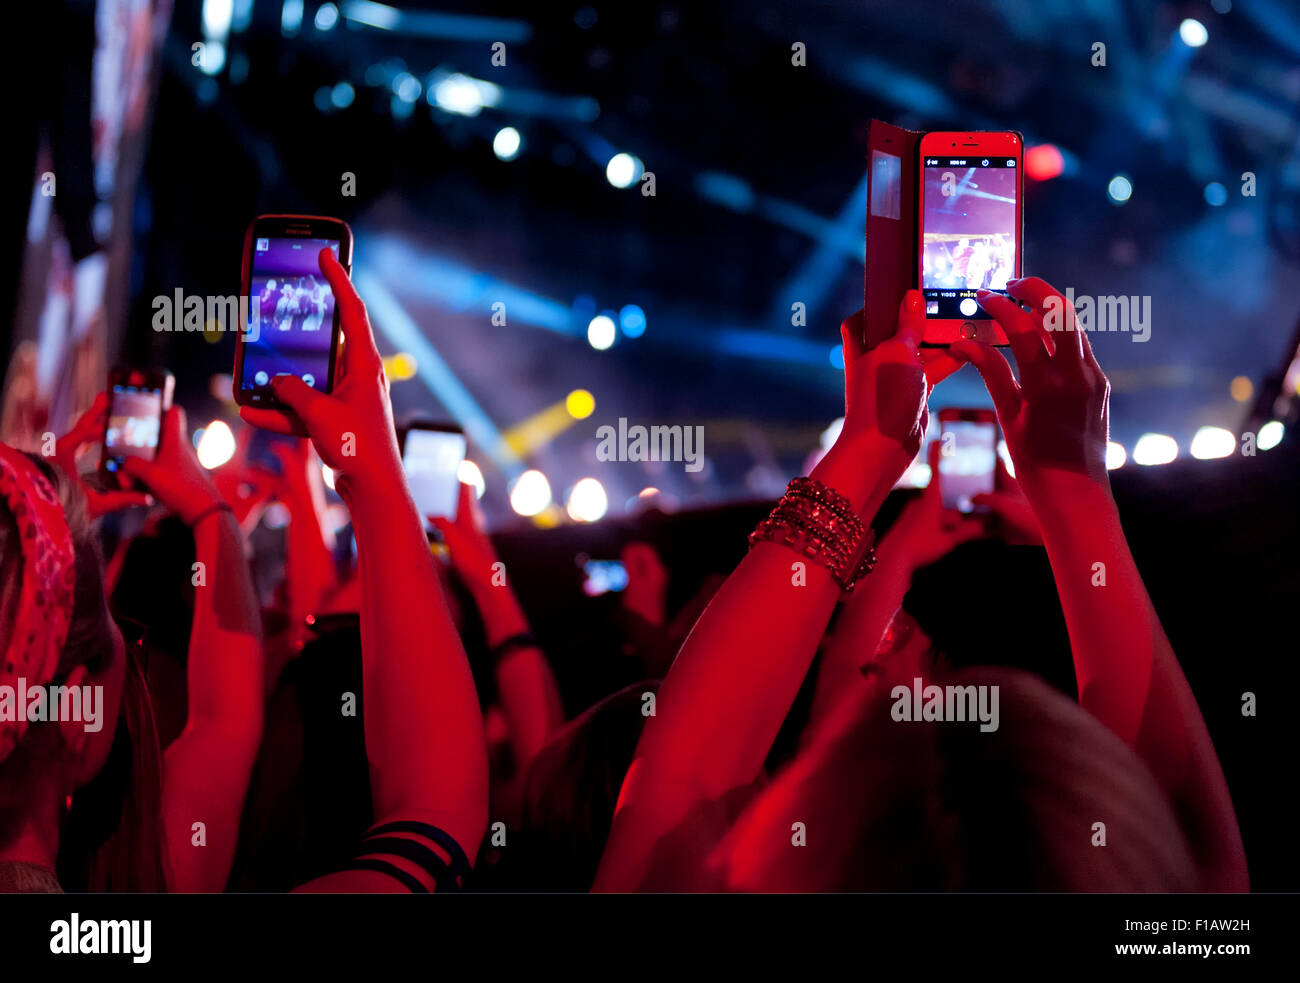 Hands holding up cell phones at a music concert - Stock Image